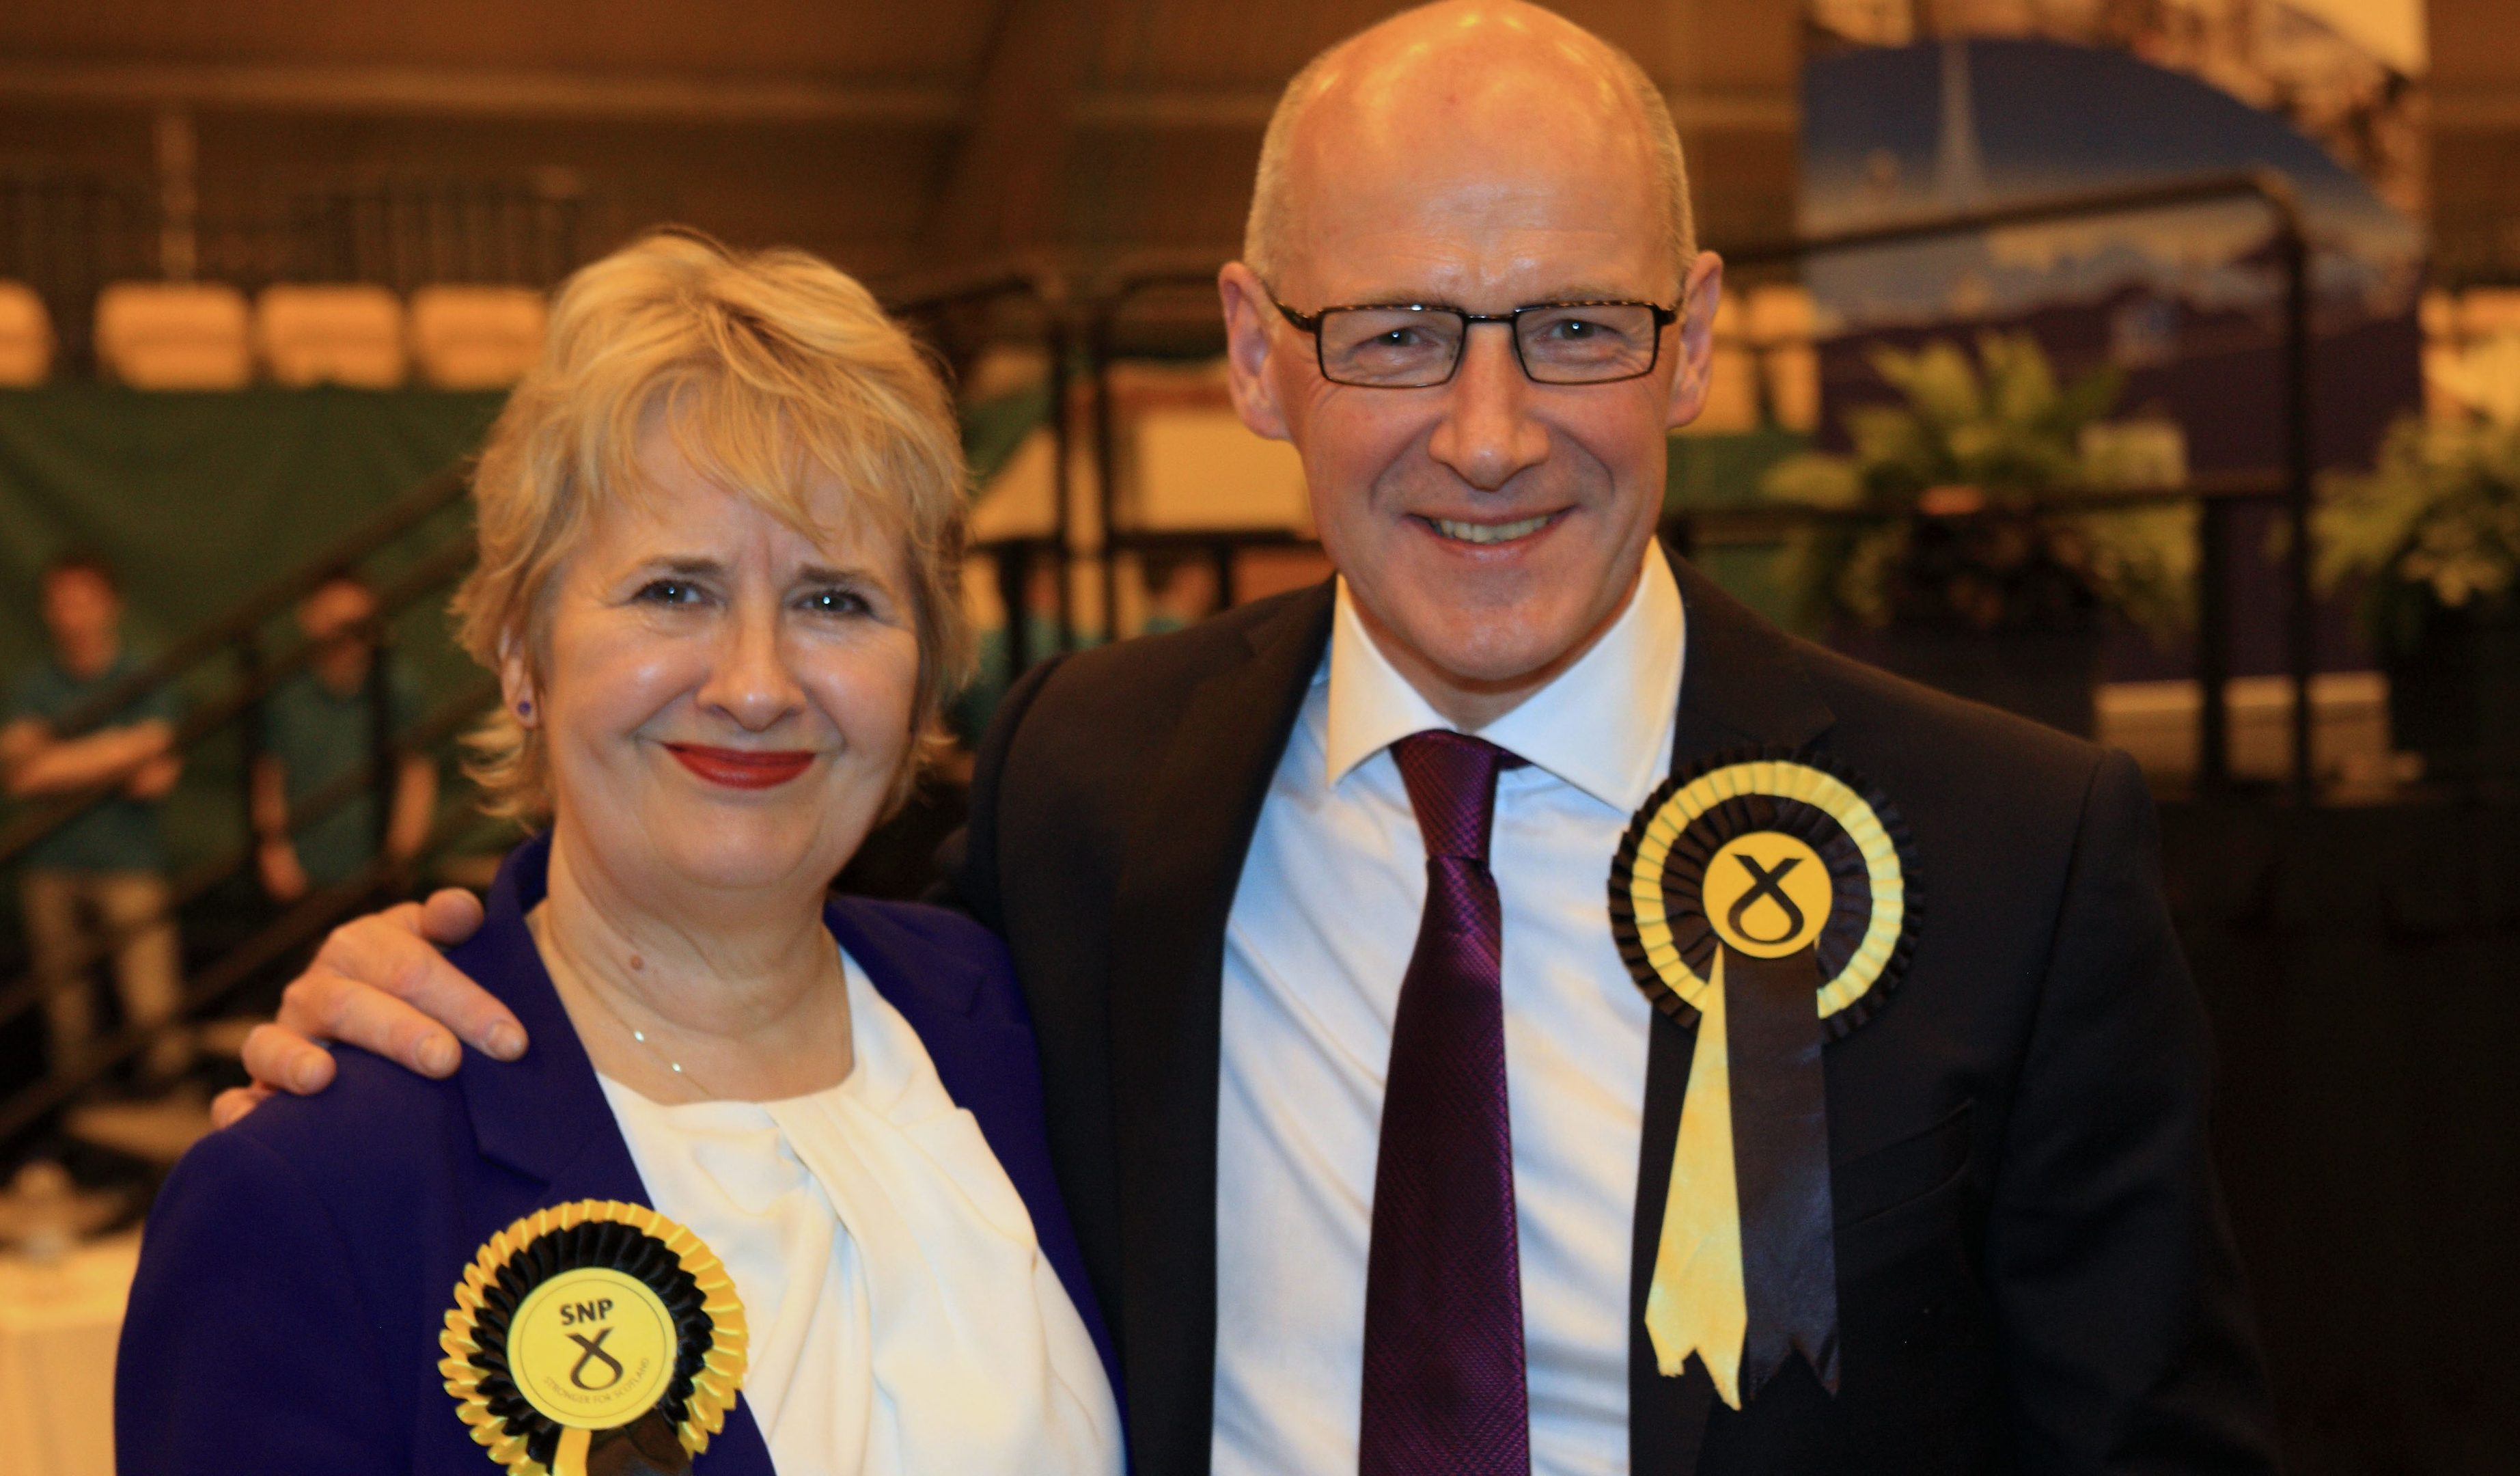 John Swinney and Roseanna Cunningham after the declaration in Perth.